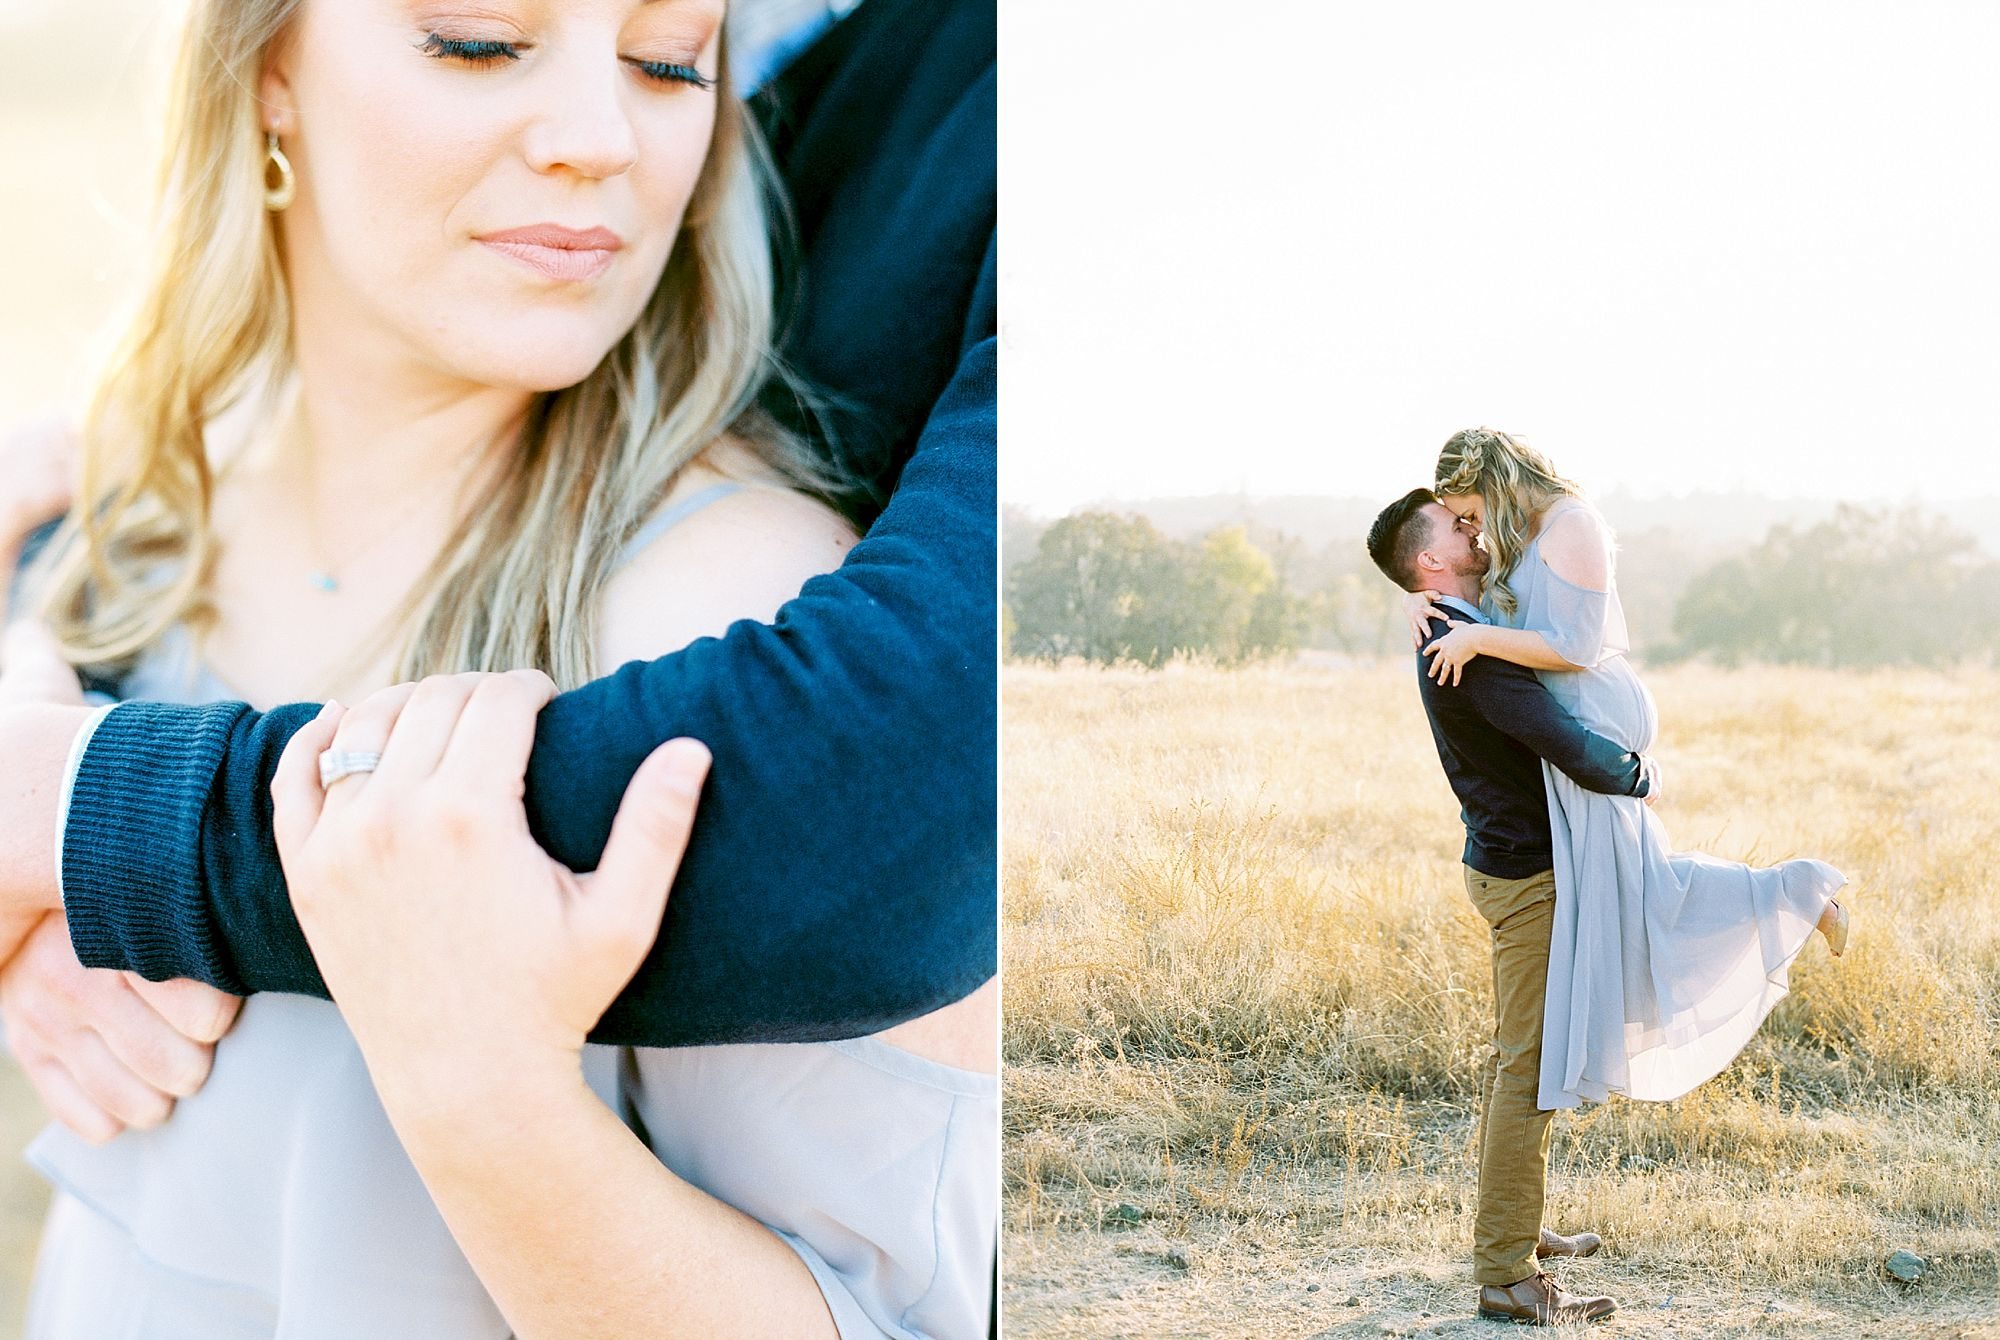 Ten Year Anniversary Portraits on Film - Ashley Baumgartner - Denise and Dan - Sacramento Wedding Photographer - Paso Robles Wedding Photography_0009.jpg